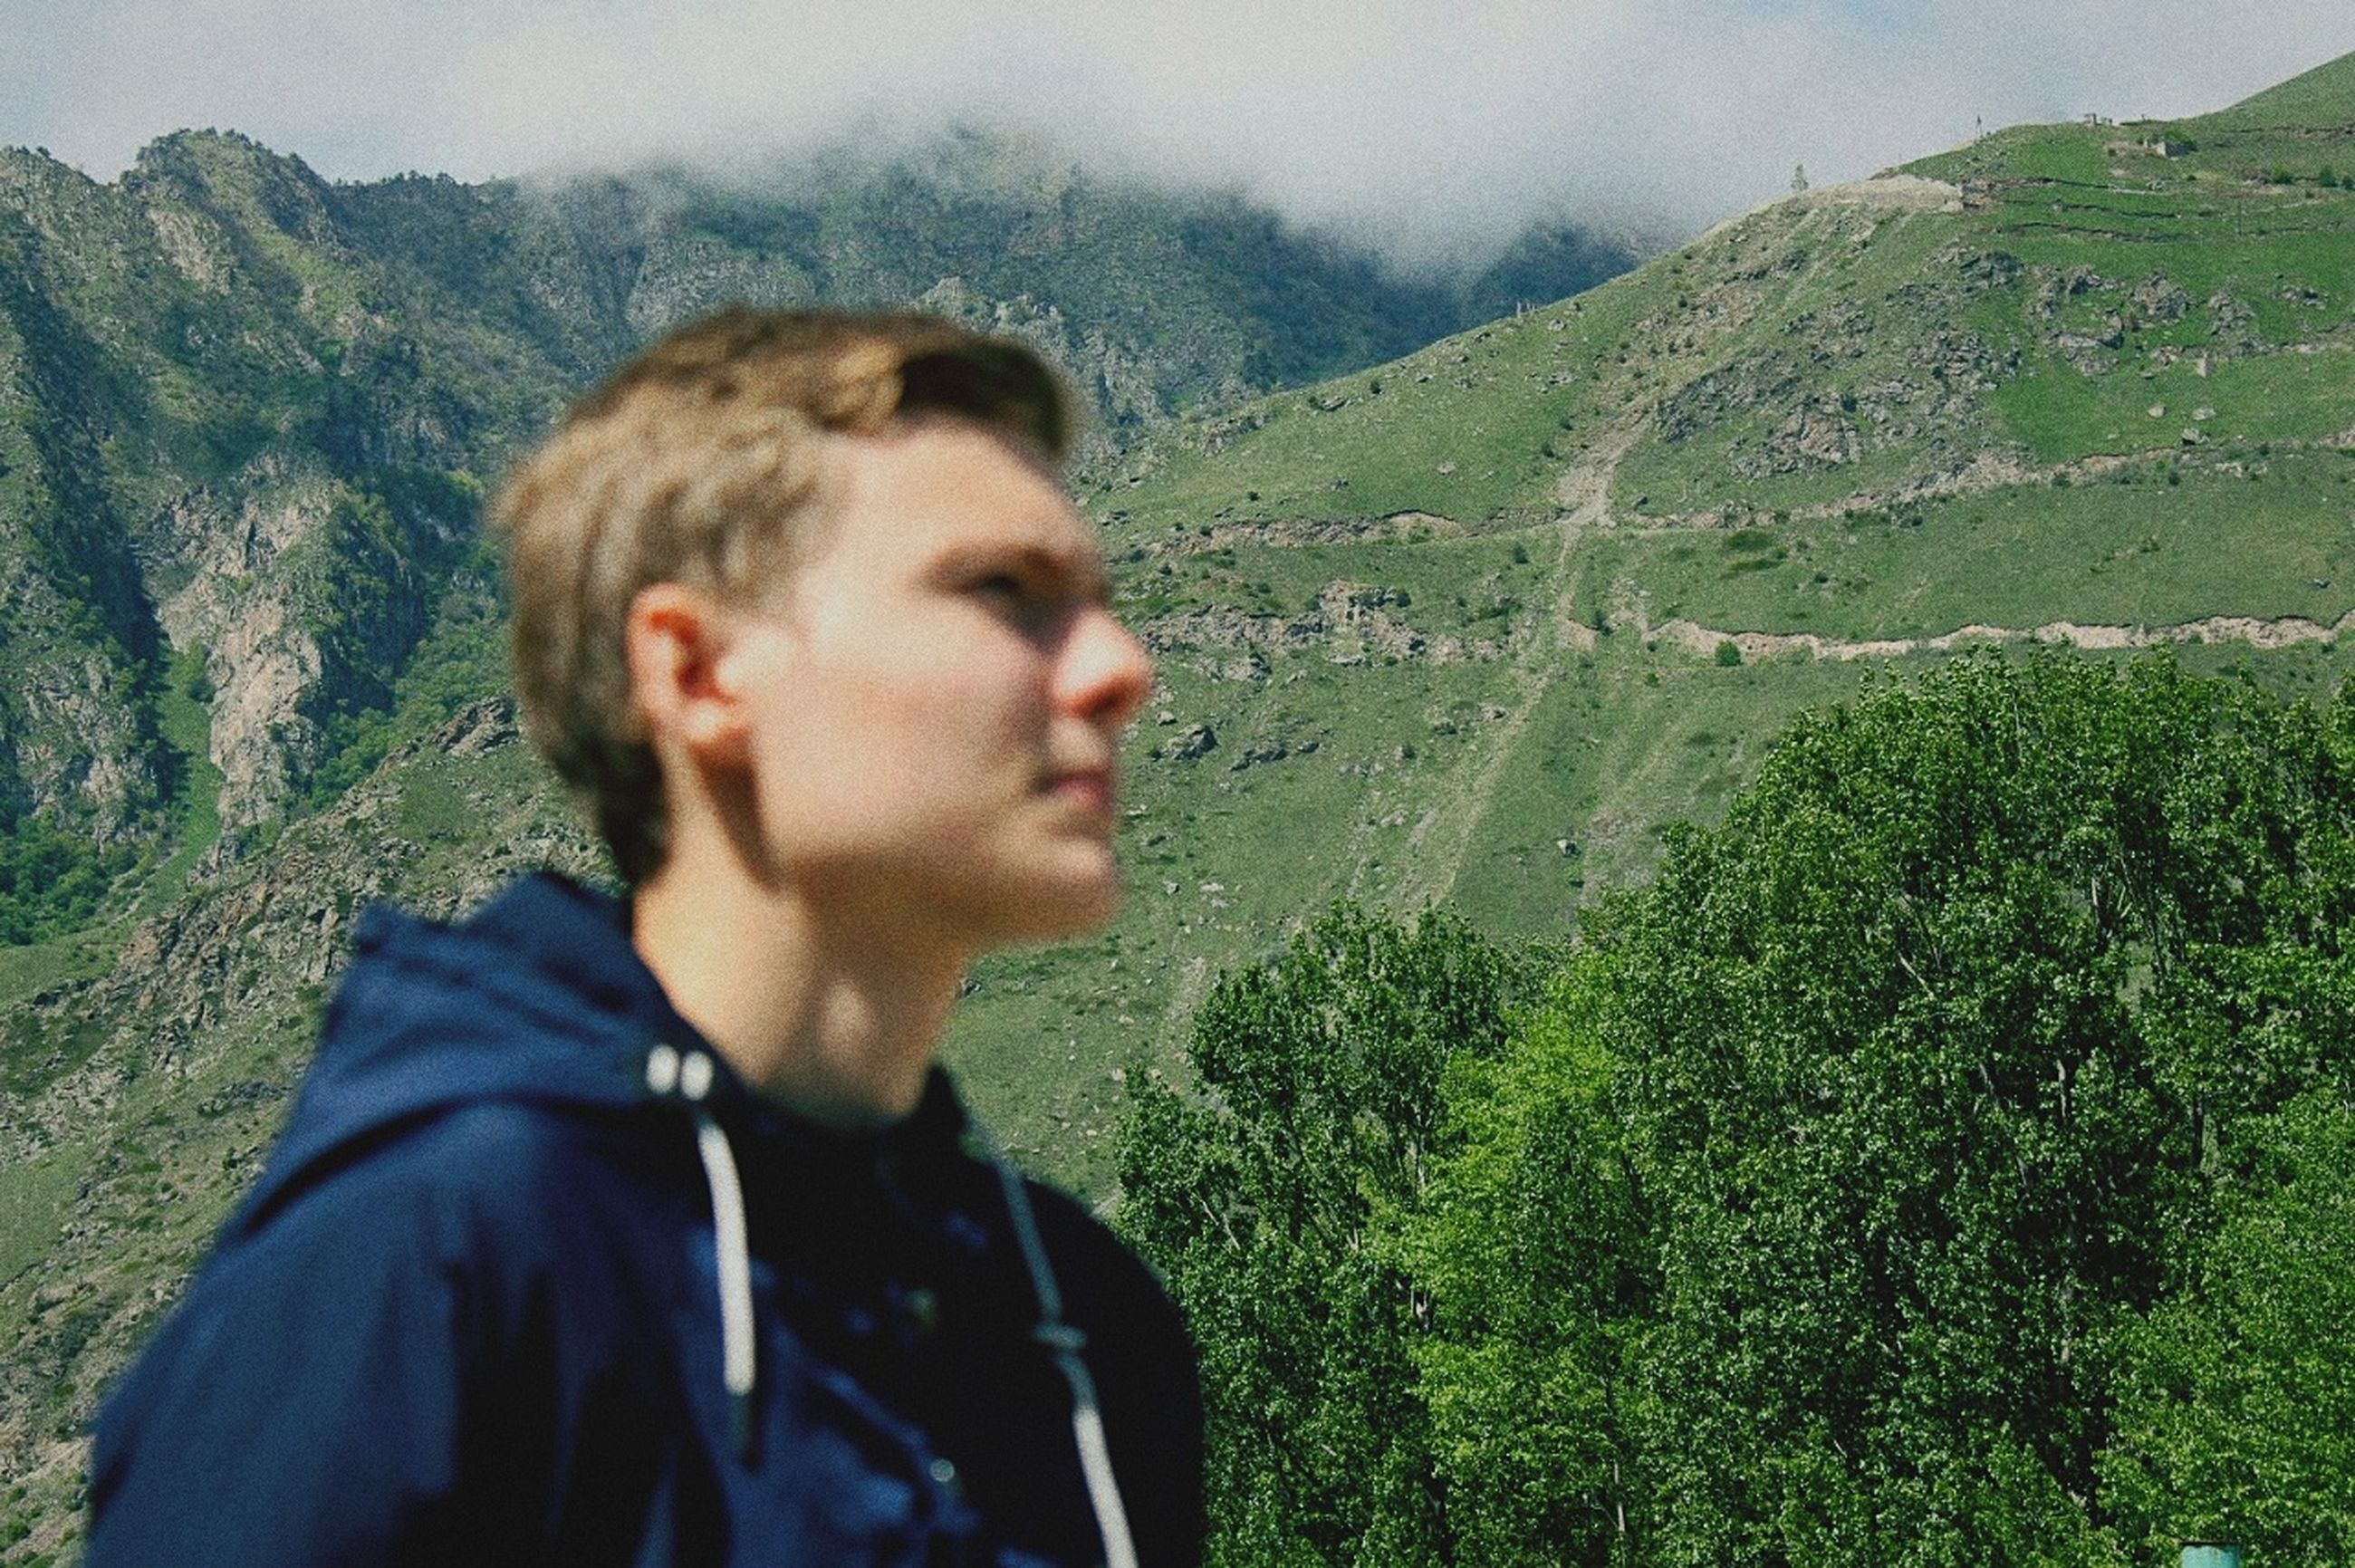 mountain, nature, real people, scenics, one person, young men, day, beauty in nature, young adult, outdoors, lifestyles, landscape, mountain range, hiking, tree, adventure, leisure activity, sky, people